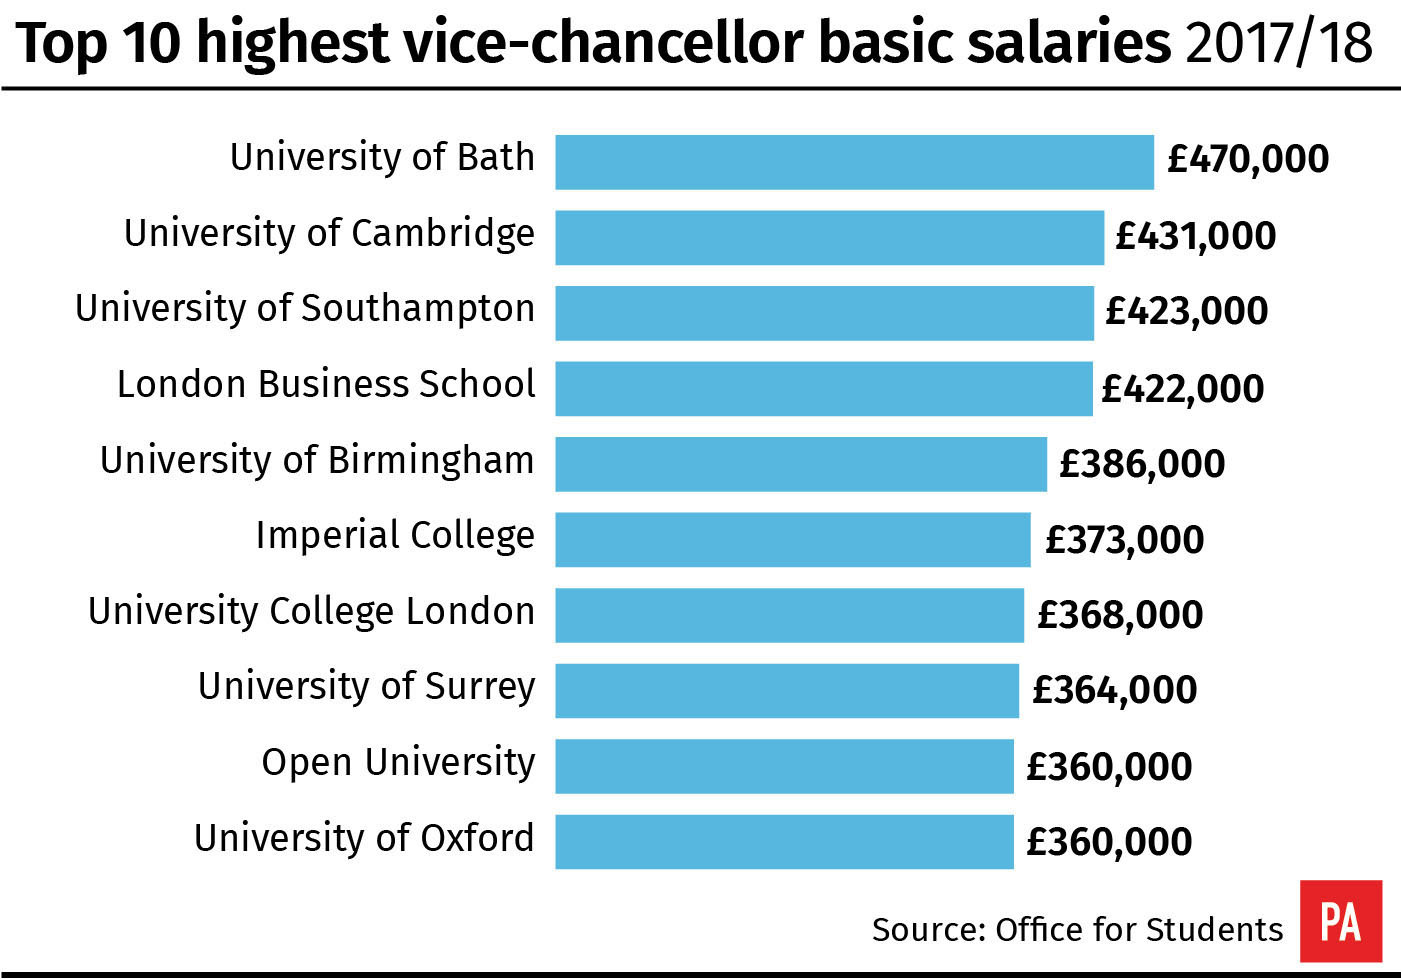 Top 10 highest vice-chancellor basic salaries 2017/18